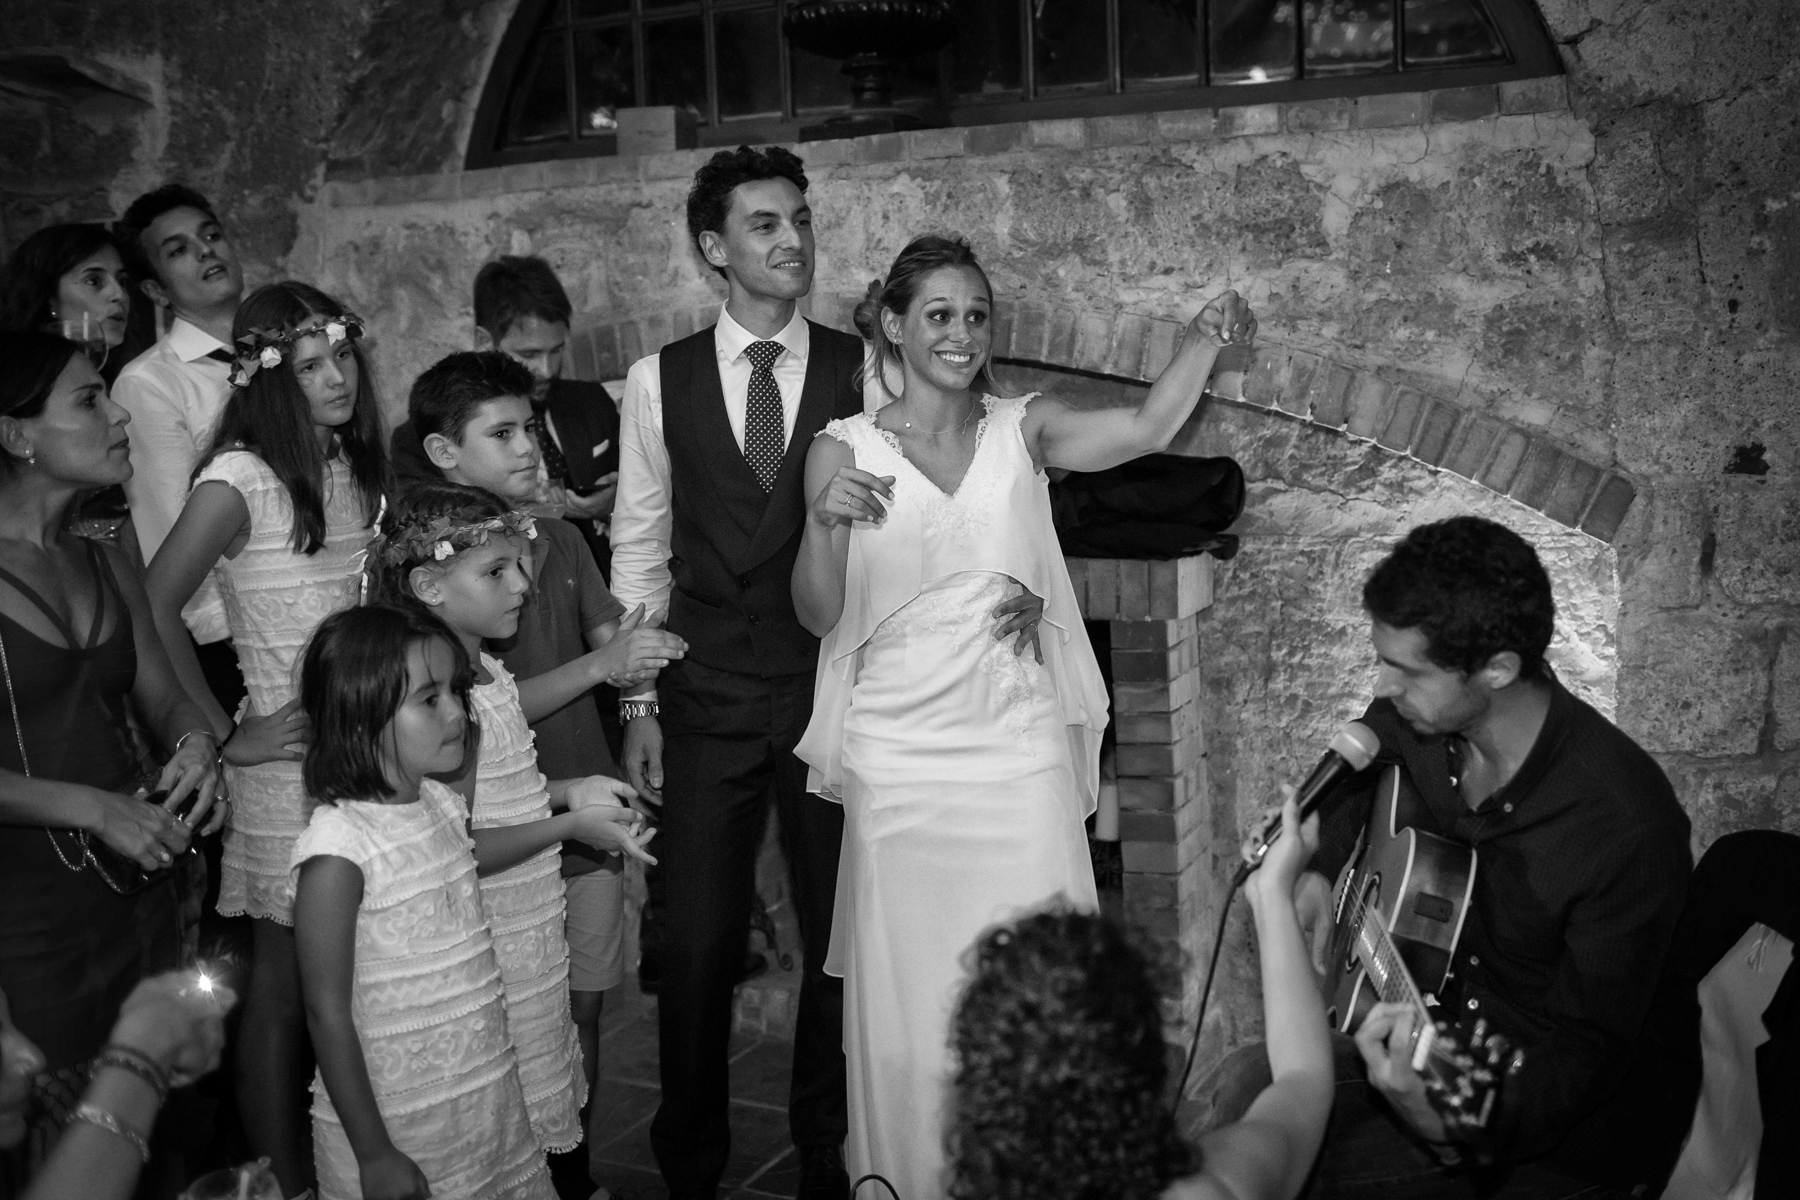 0252-_MG_0179-Modificafotografo-matrimonio-napoli-scattidamore